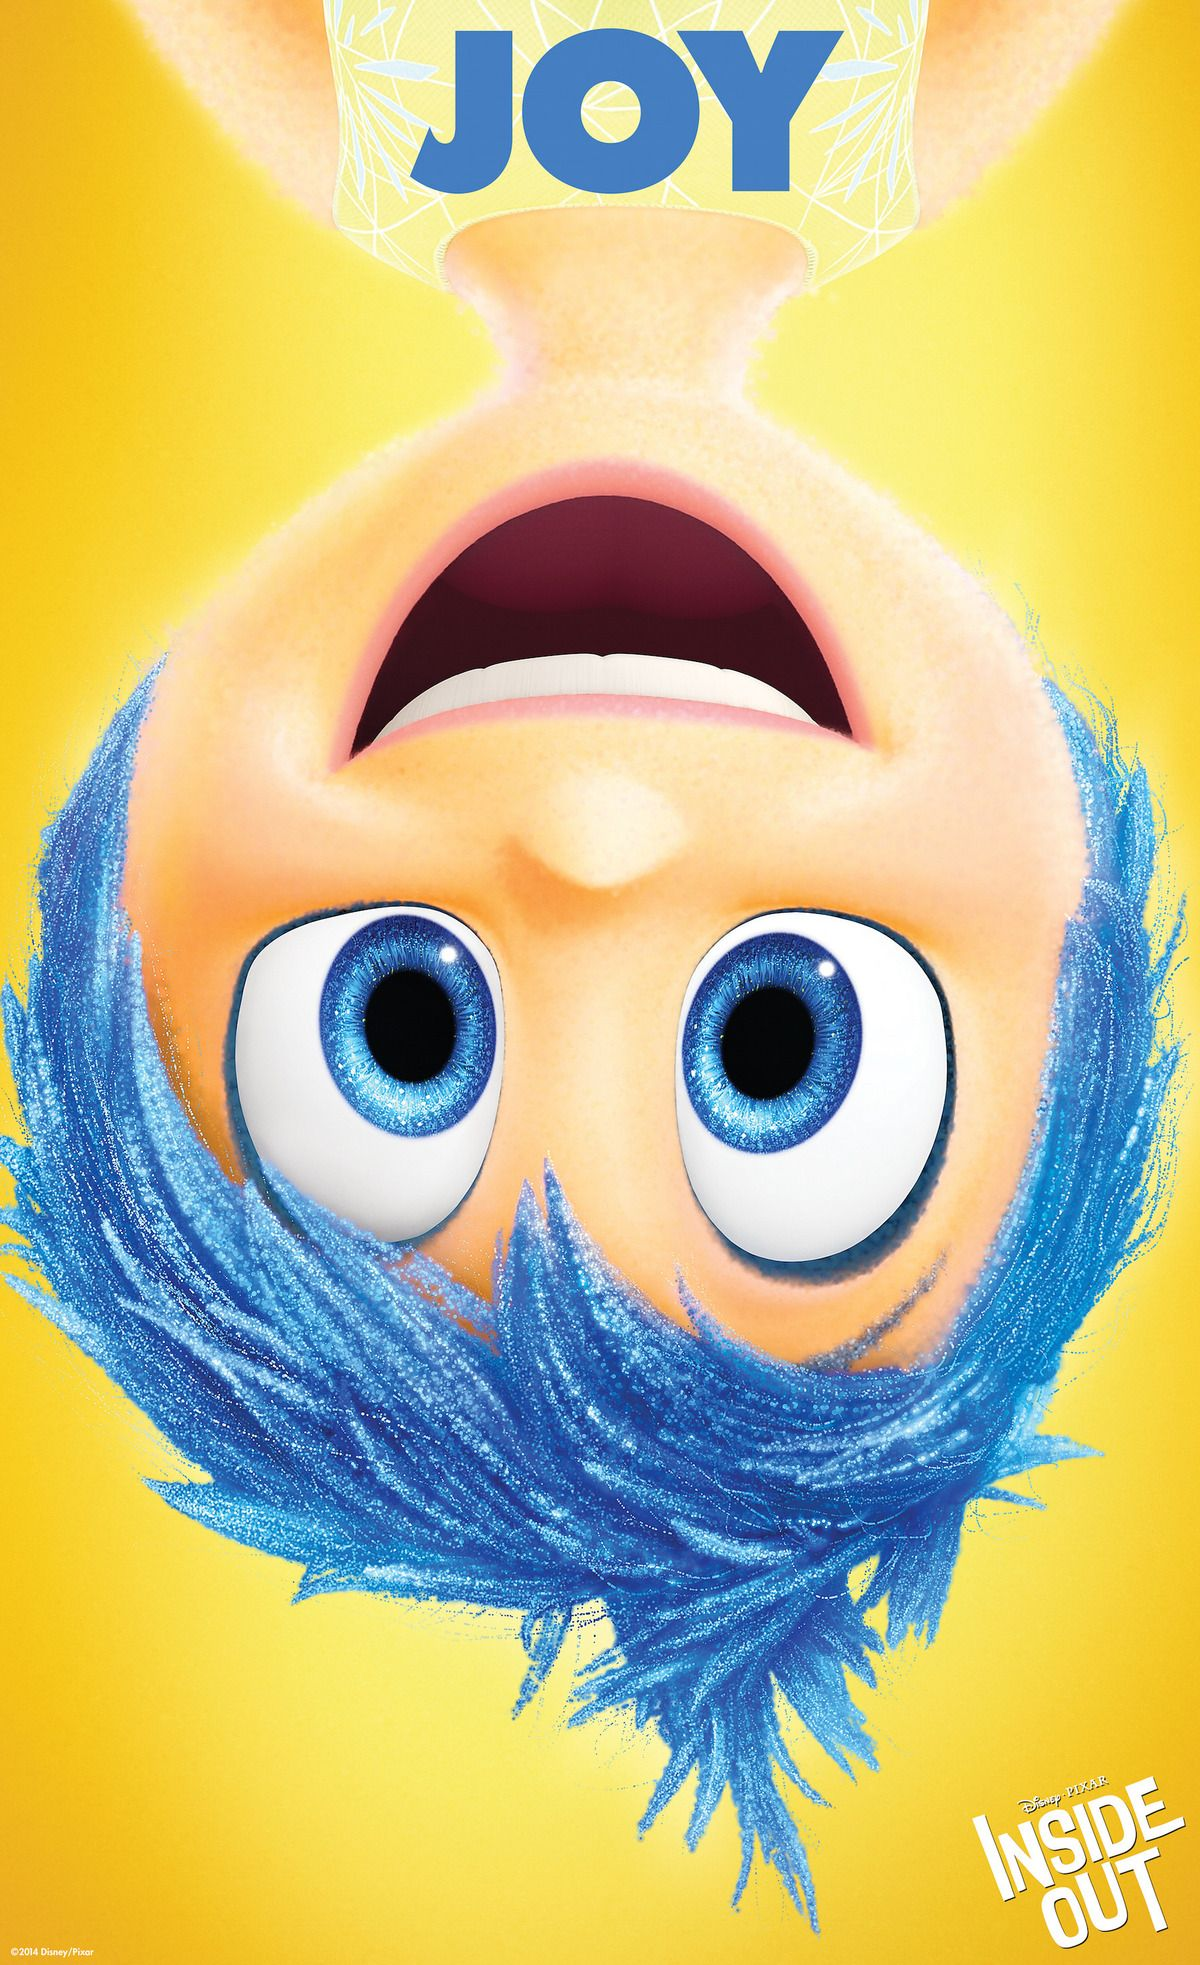 Joy from Pixar's 'Inside Out'